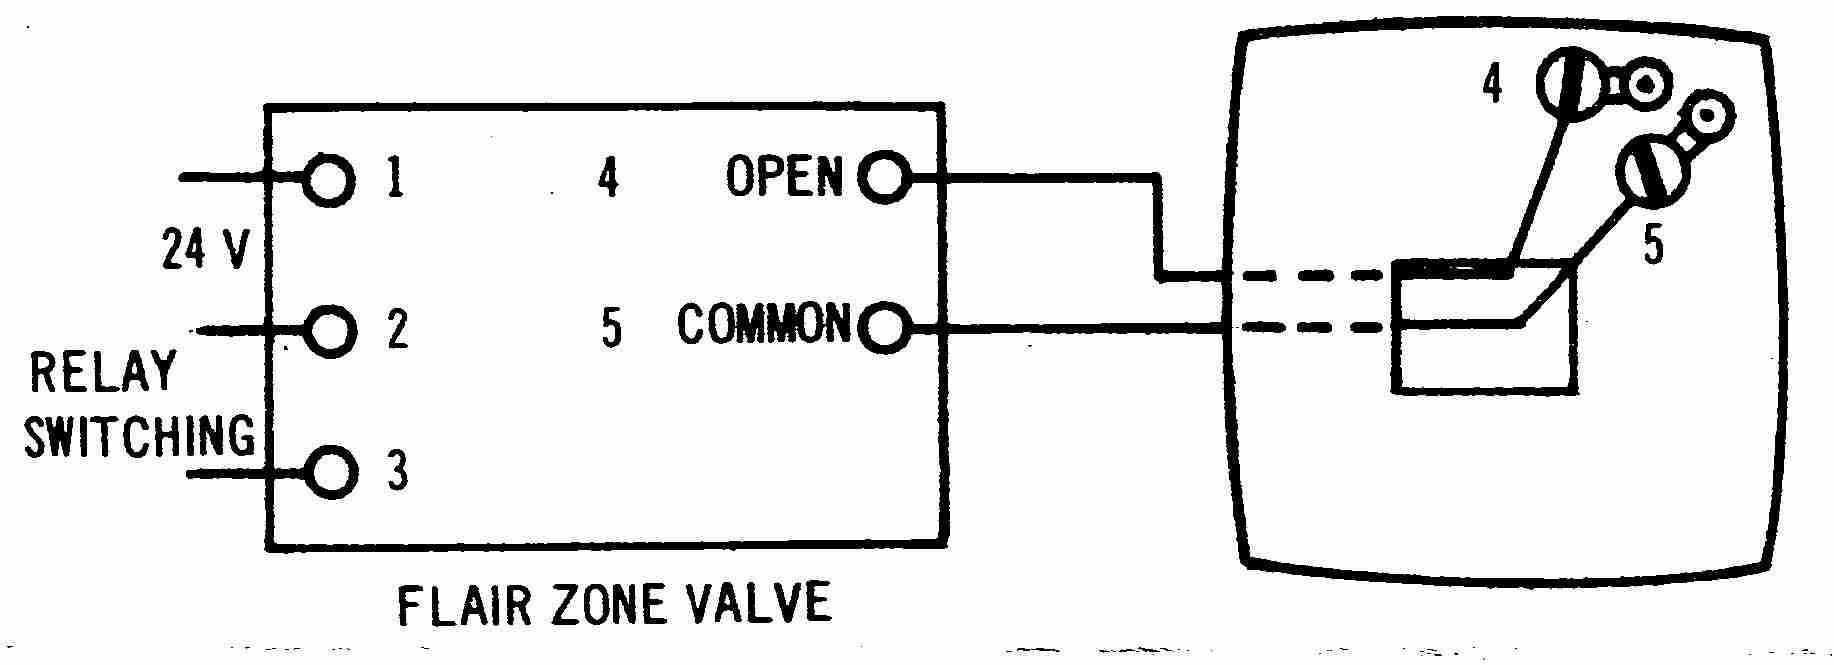 Room Thermostat Wiring Diagrams For Hvac Systems Relay Schematics Flair 2 Wire Thermosat Diagram